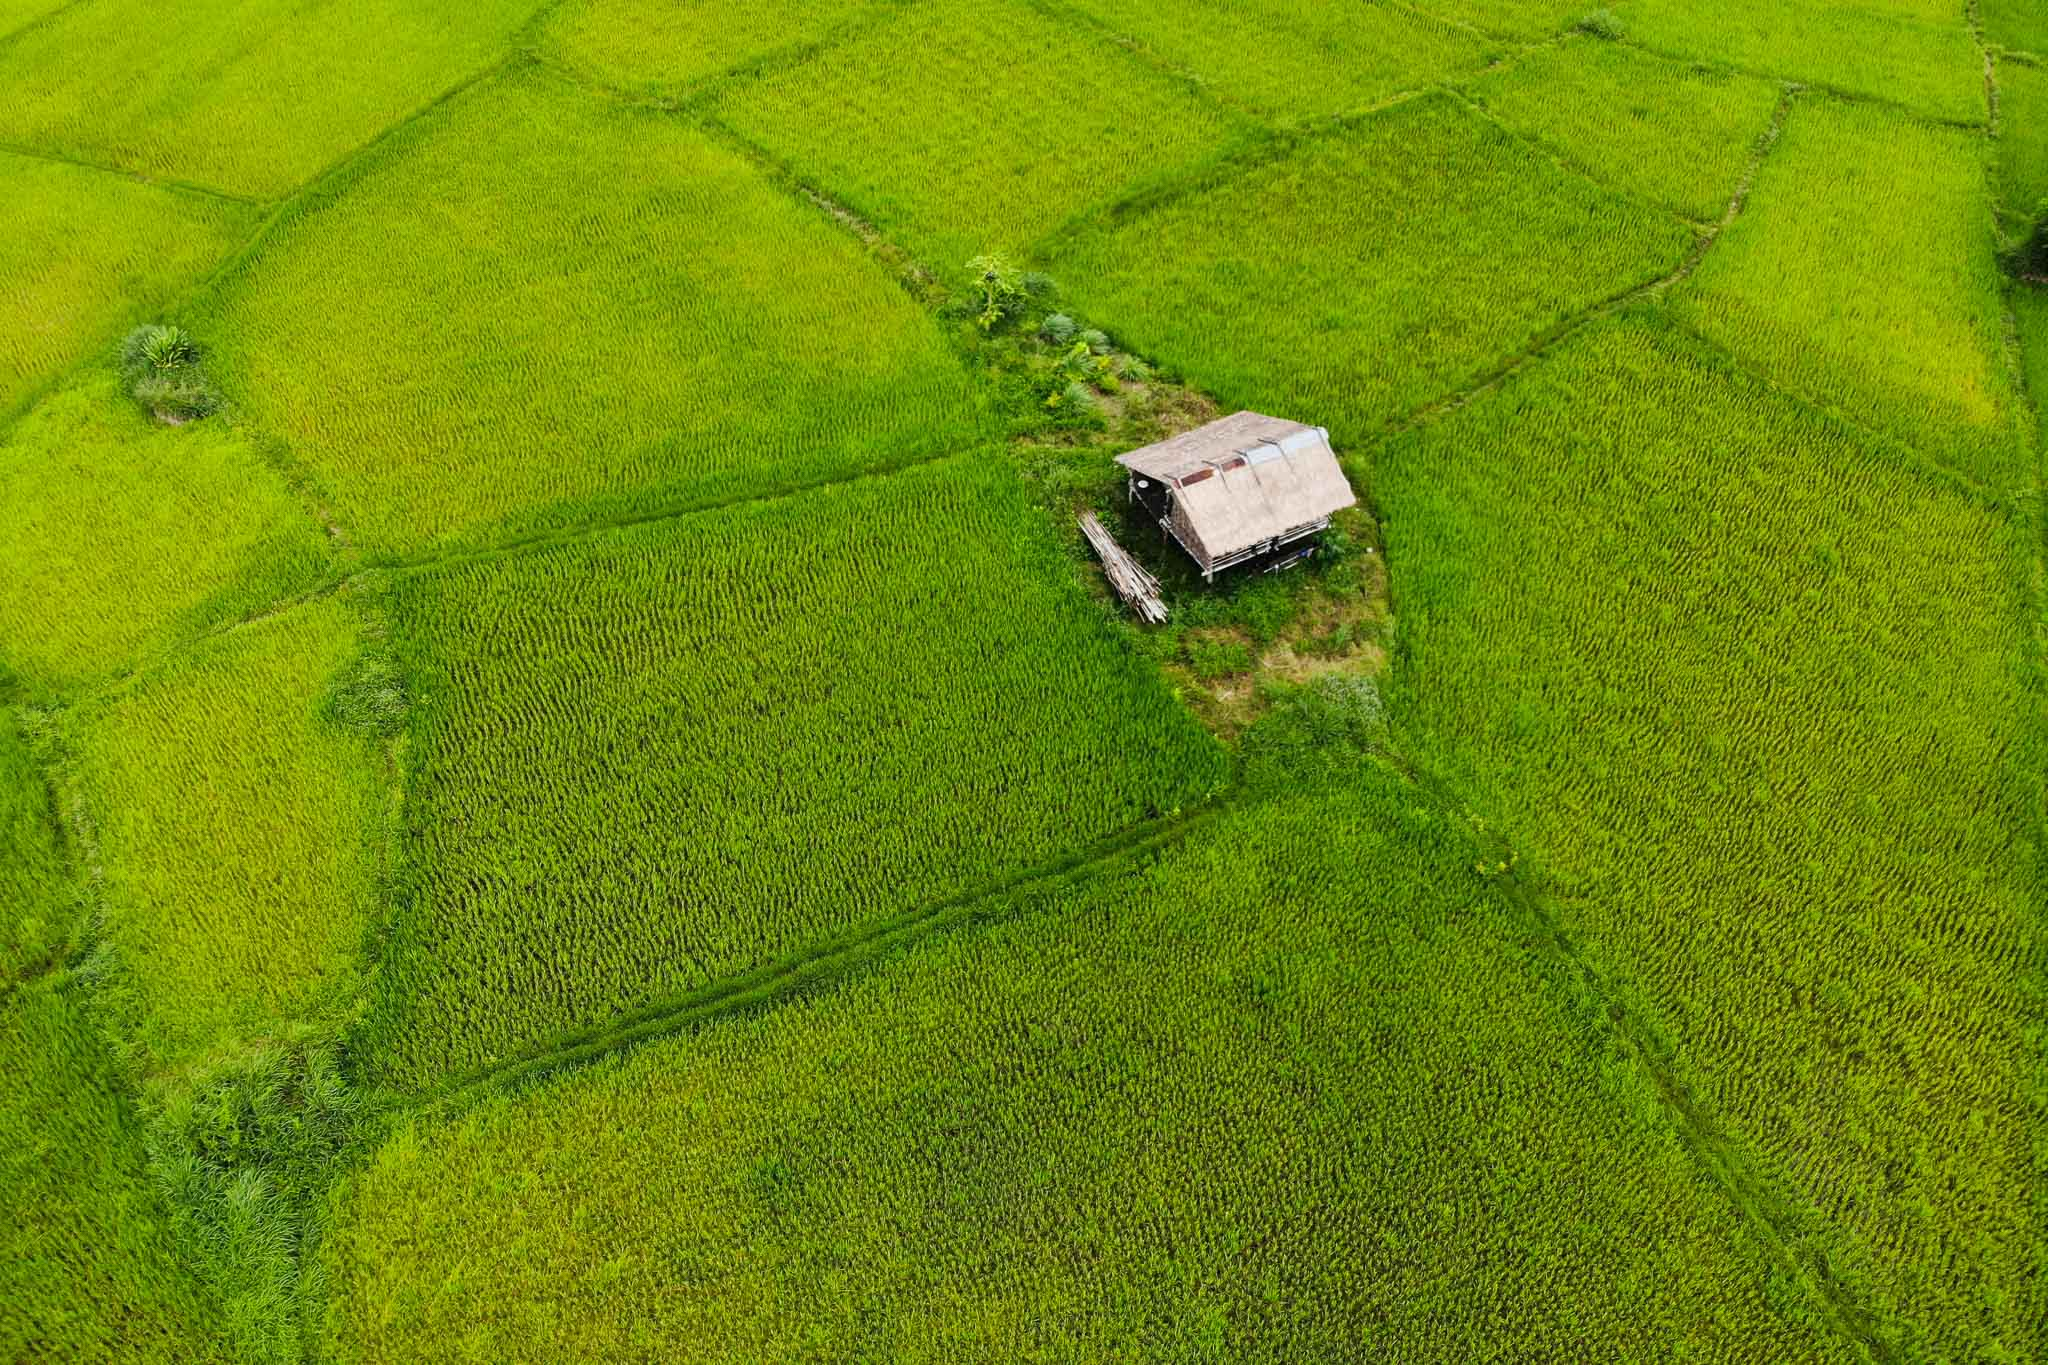 House in a paddy field, Laos